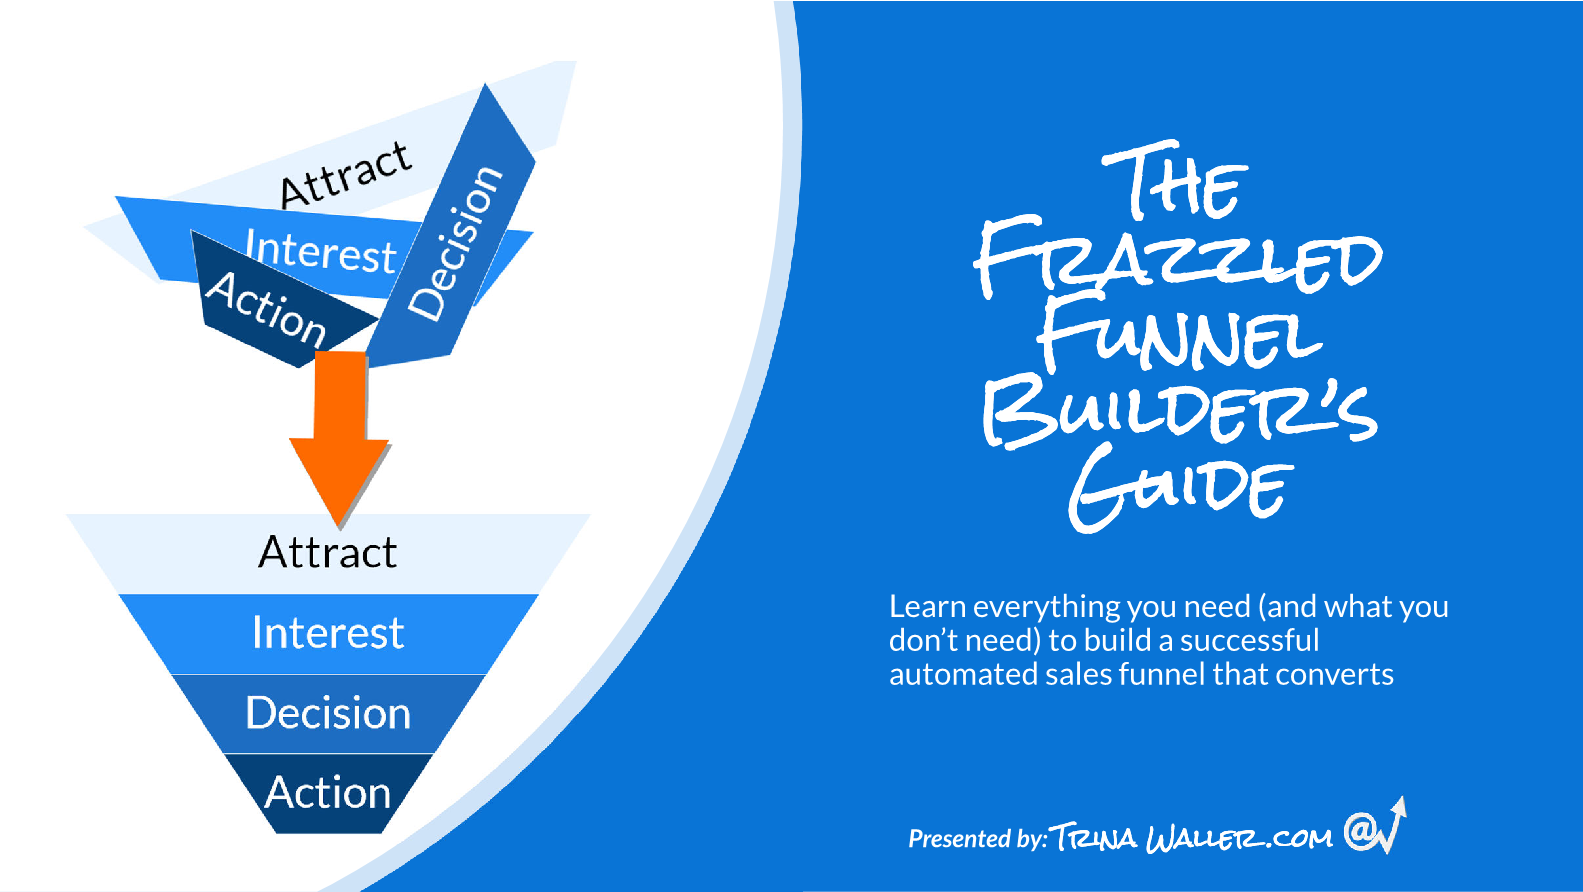 Frazzled-funnel-builders-guide-feature-trina-waller